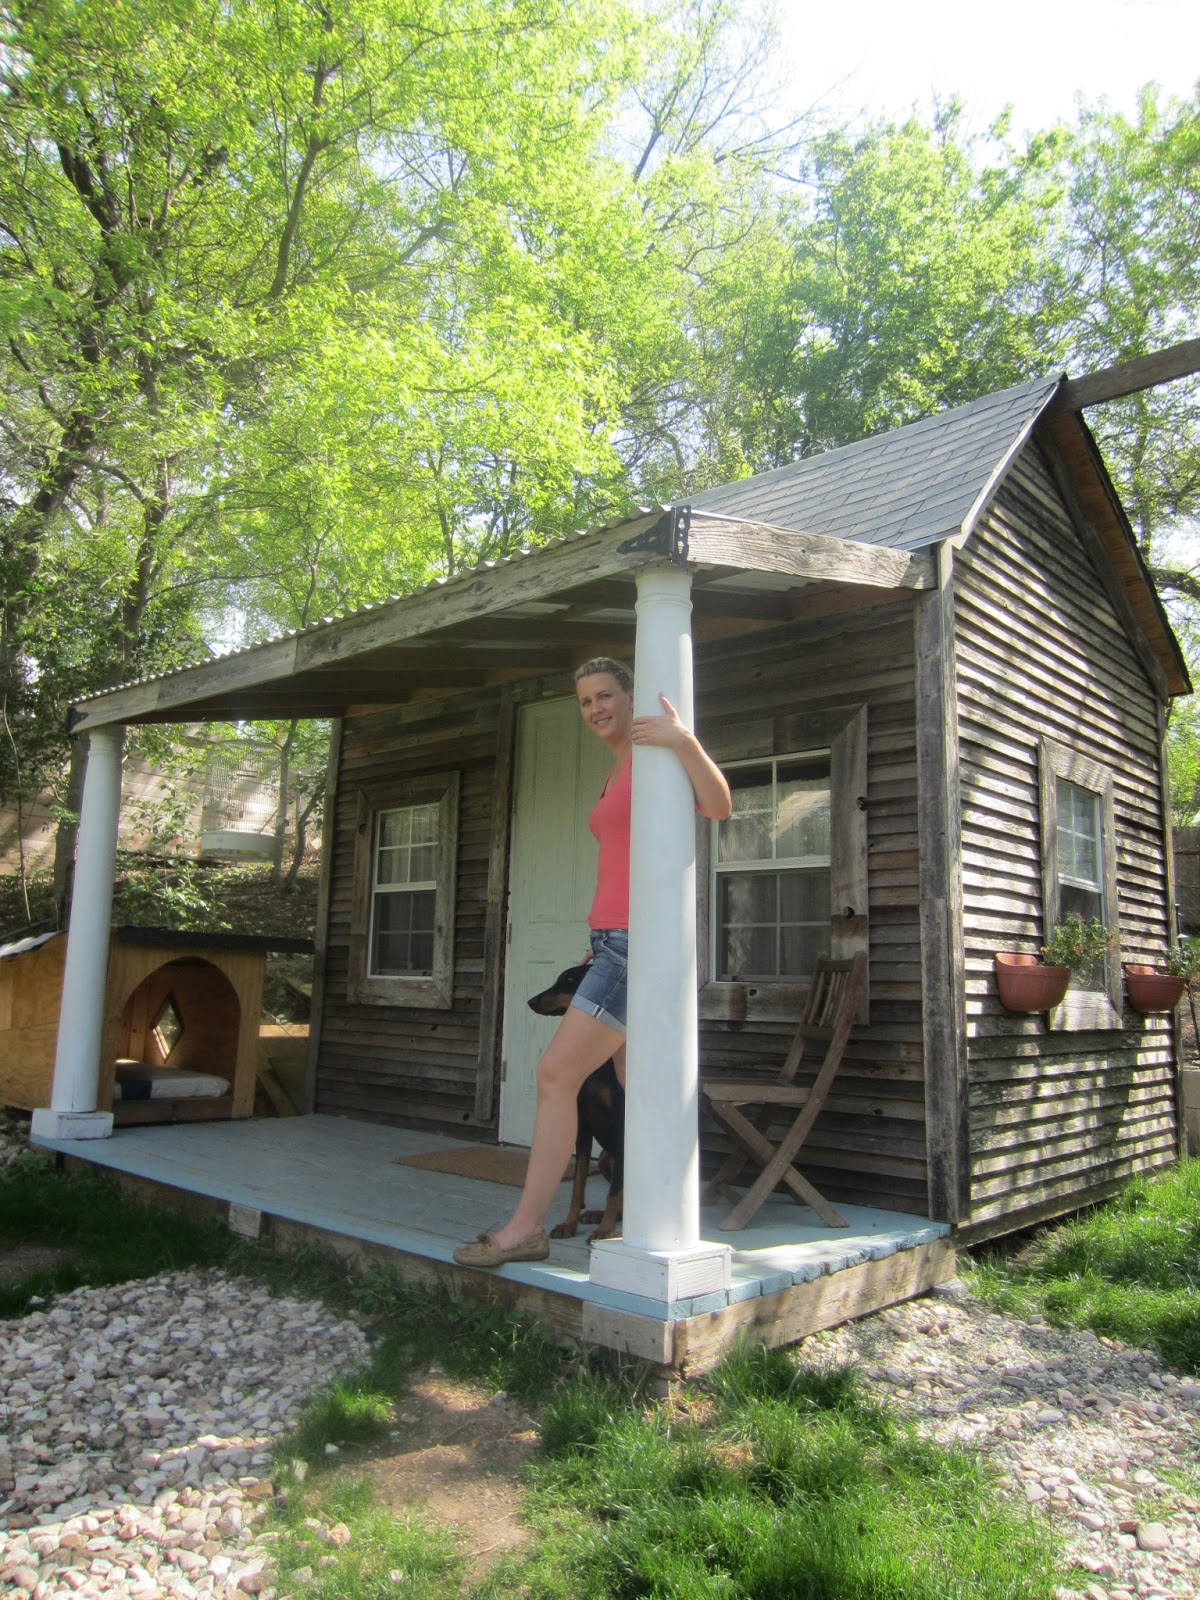 Best Kitchen Gallery: Relaxshacks Jennifer Francis' Tiny House Cabin For Rent In of Tiny House Builders In Texas on rachelxblog.com